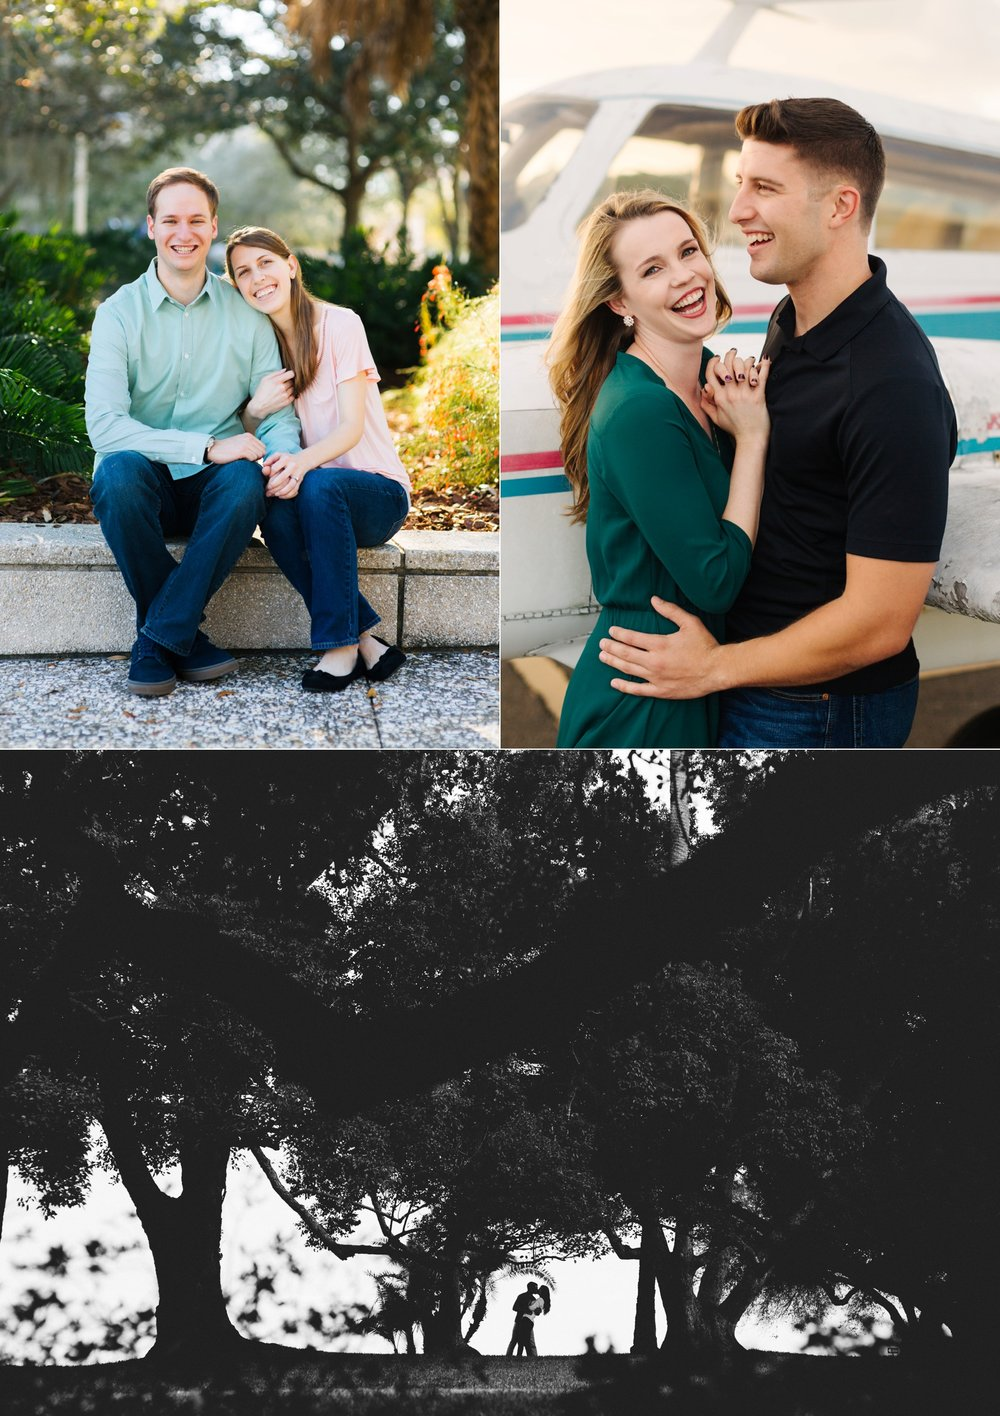 Jake & Katie Photography Best of Couples 2016-025.jpg